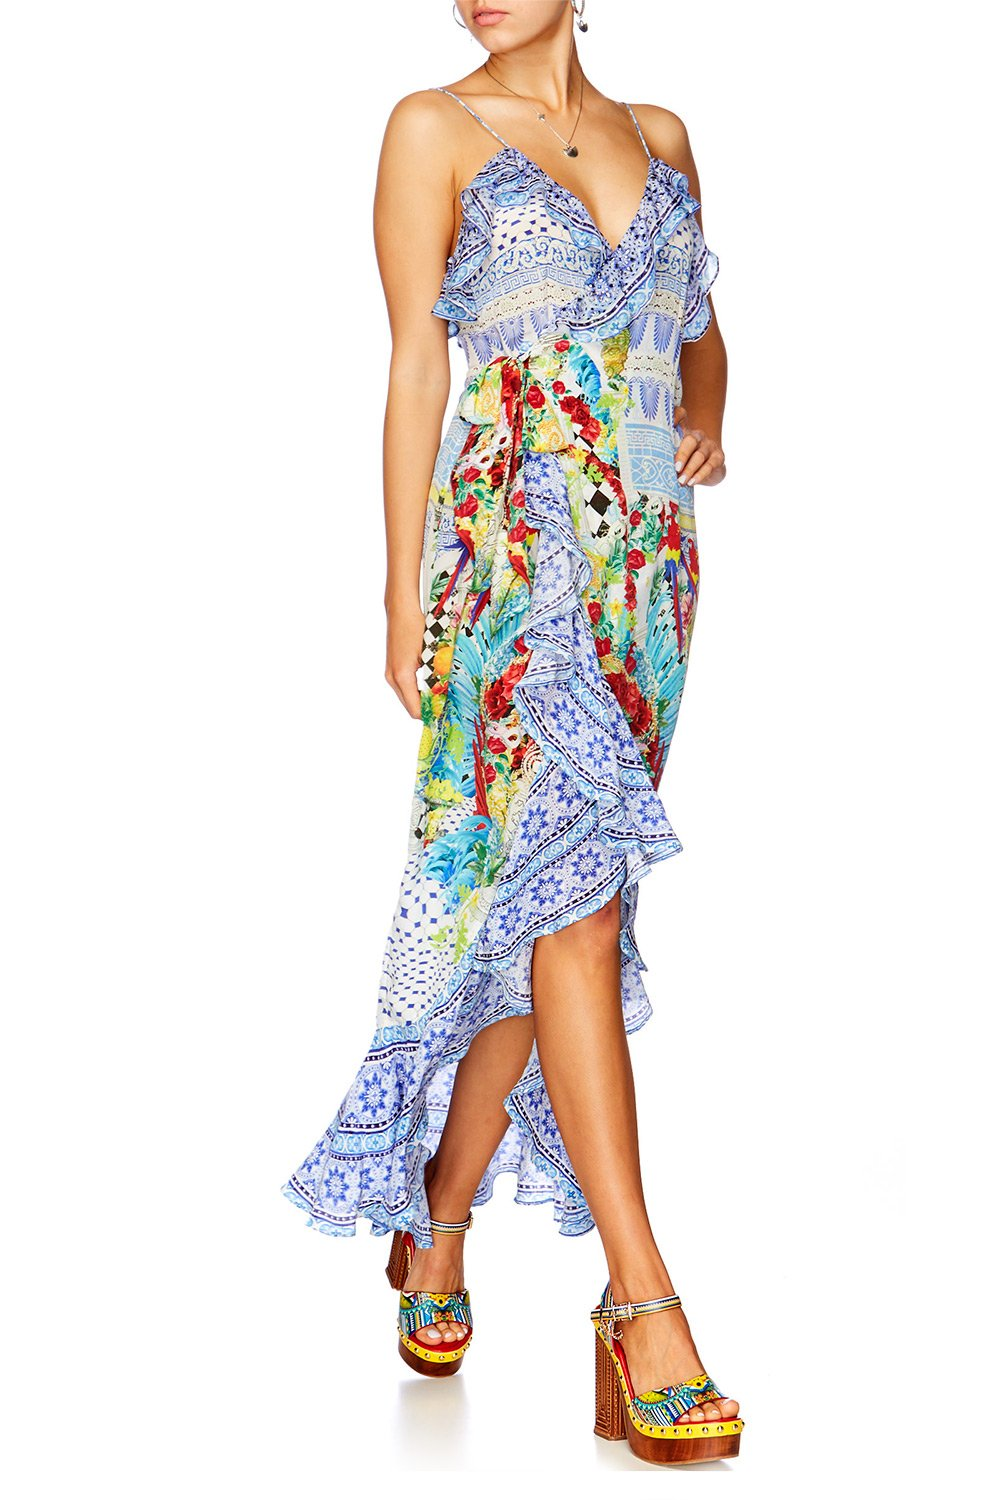 MASKING MADNESS FRILL DRESS WITH LONG BACK